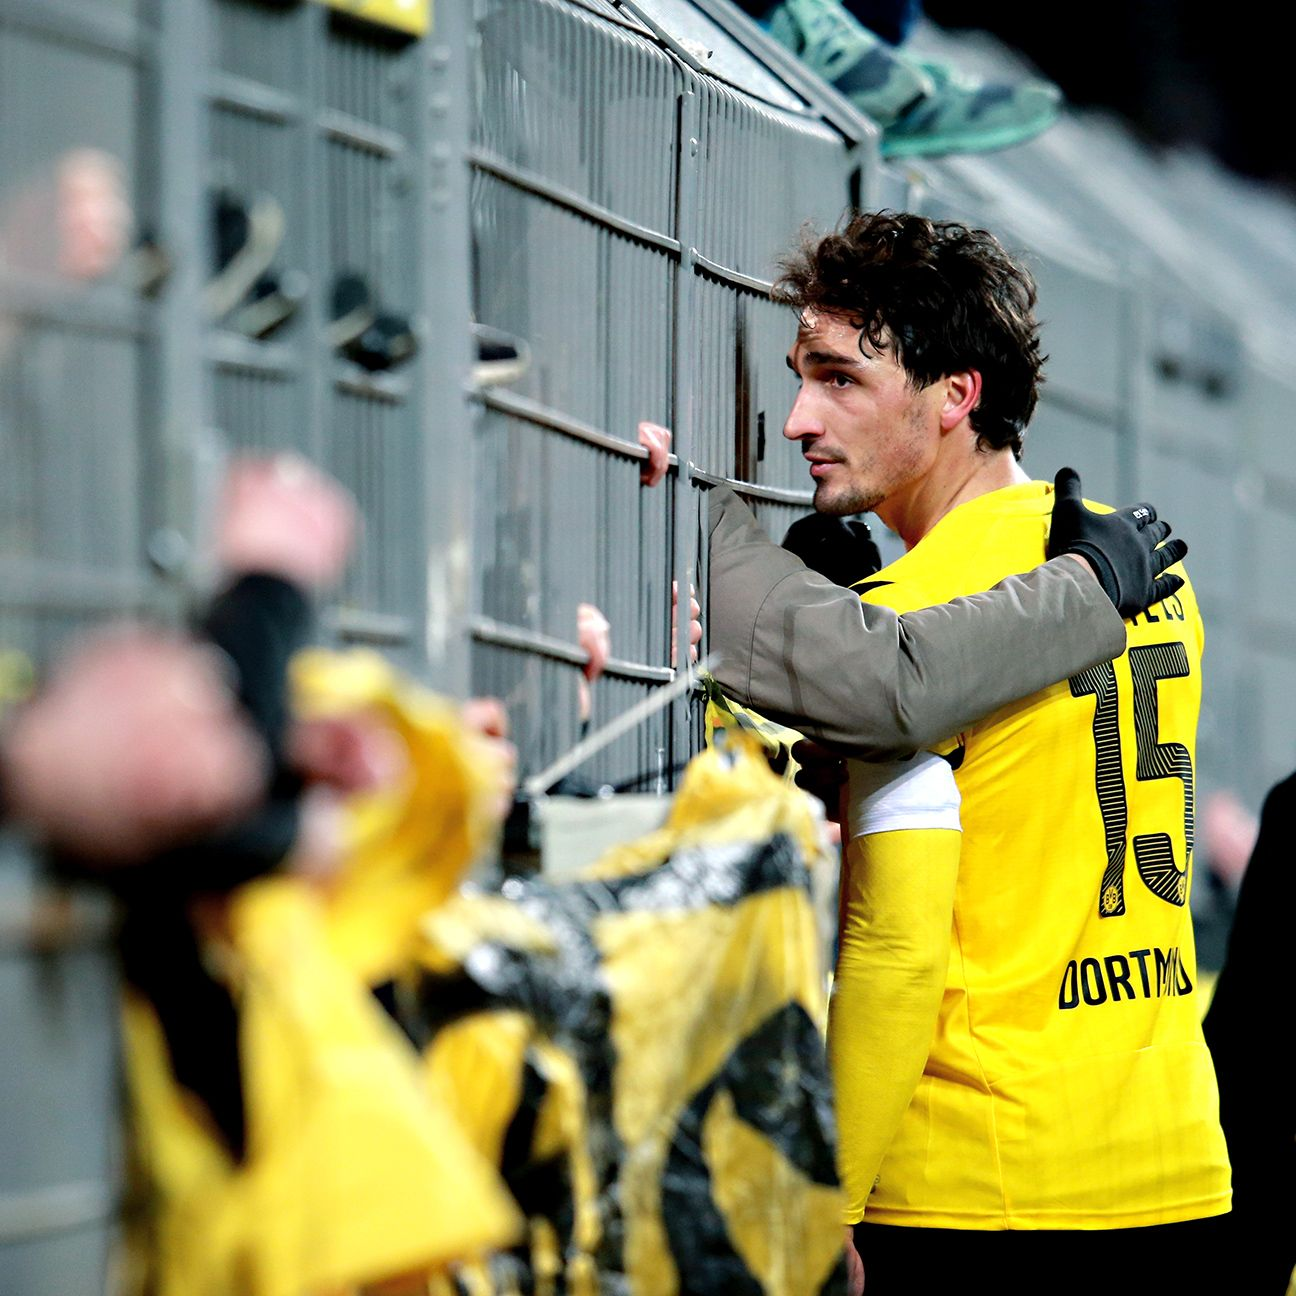 Borussia Dortmund defender Mats Hummels tried to calm down upset fans after his team's latest defeat.